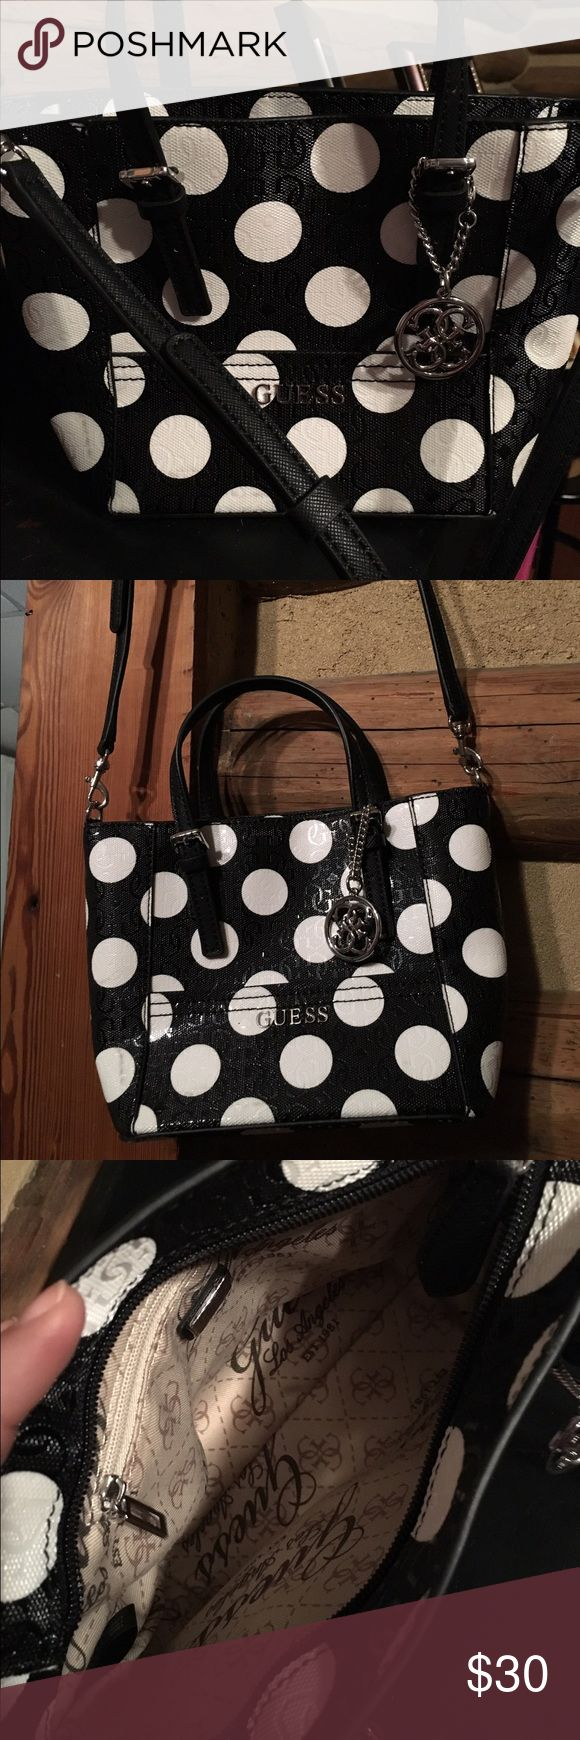 👜 Polka dot Guess bag This is a very cute small Guess bag. Bought brand new, used once. Comes with long shoulder/crossbody straps. ⚫️⚪️ Guess Bags Totes